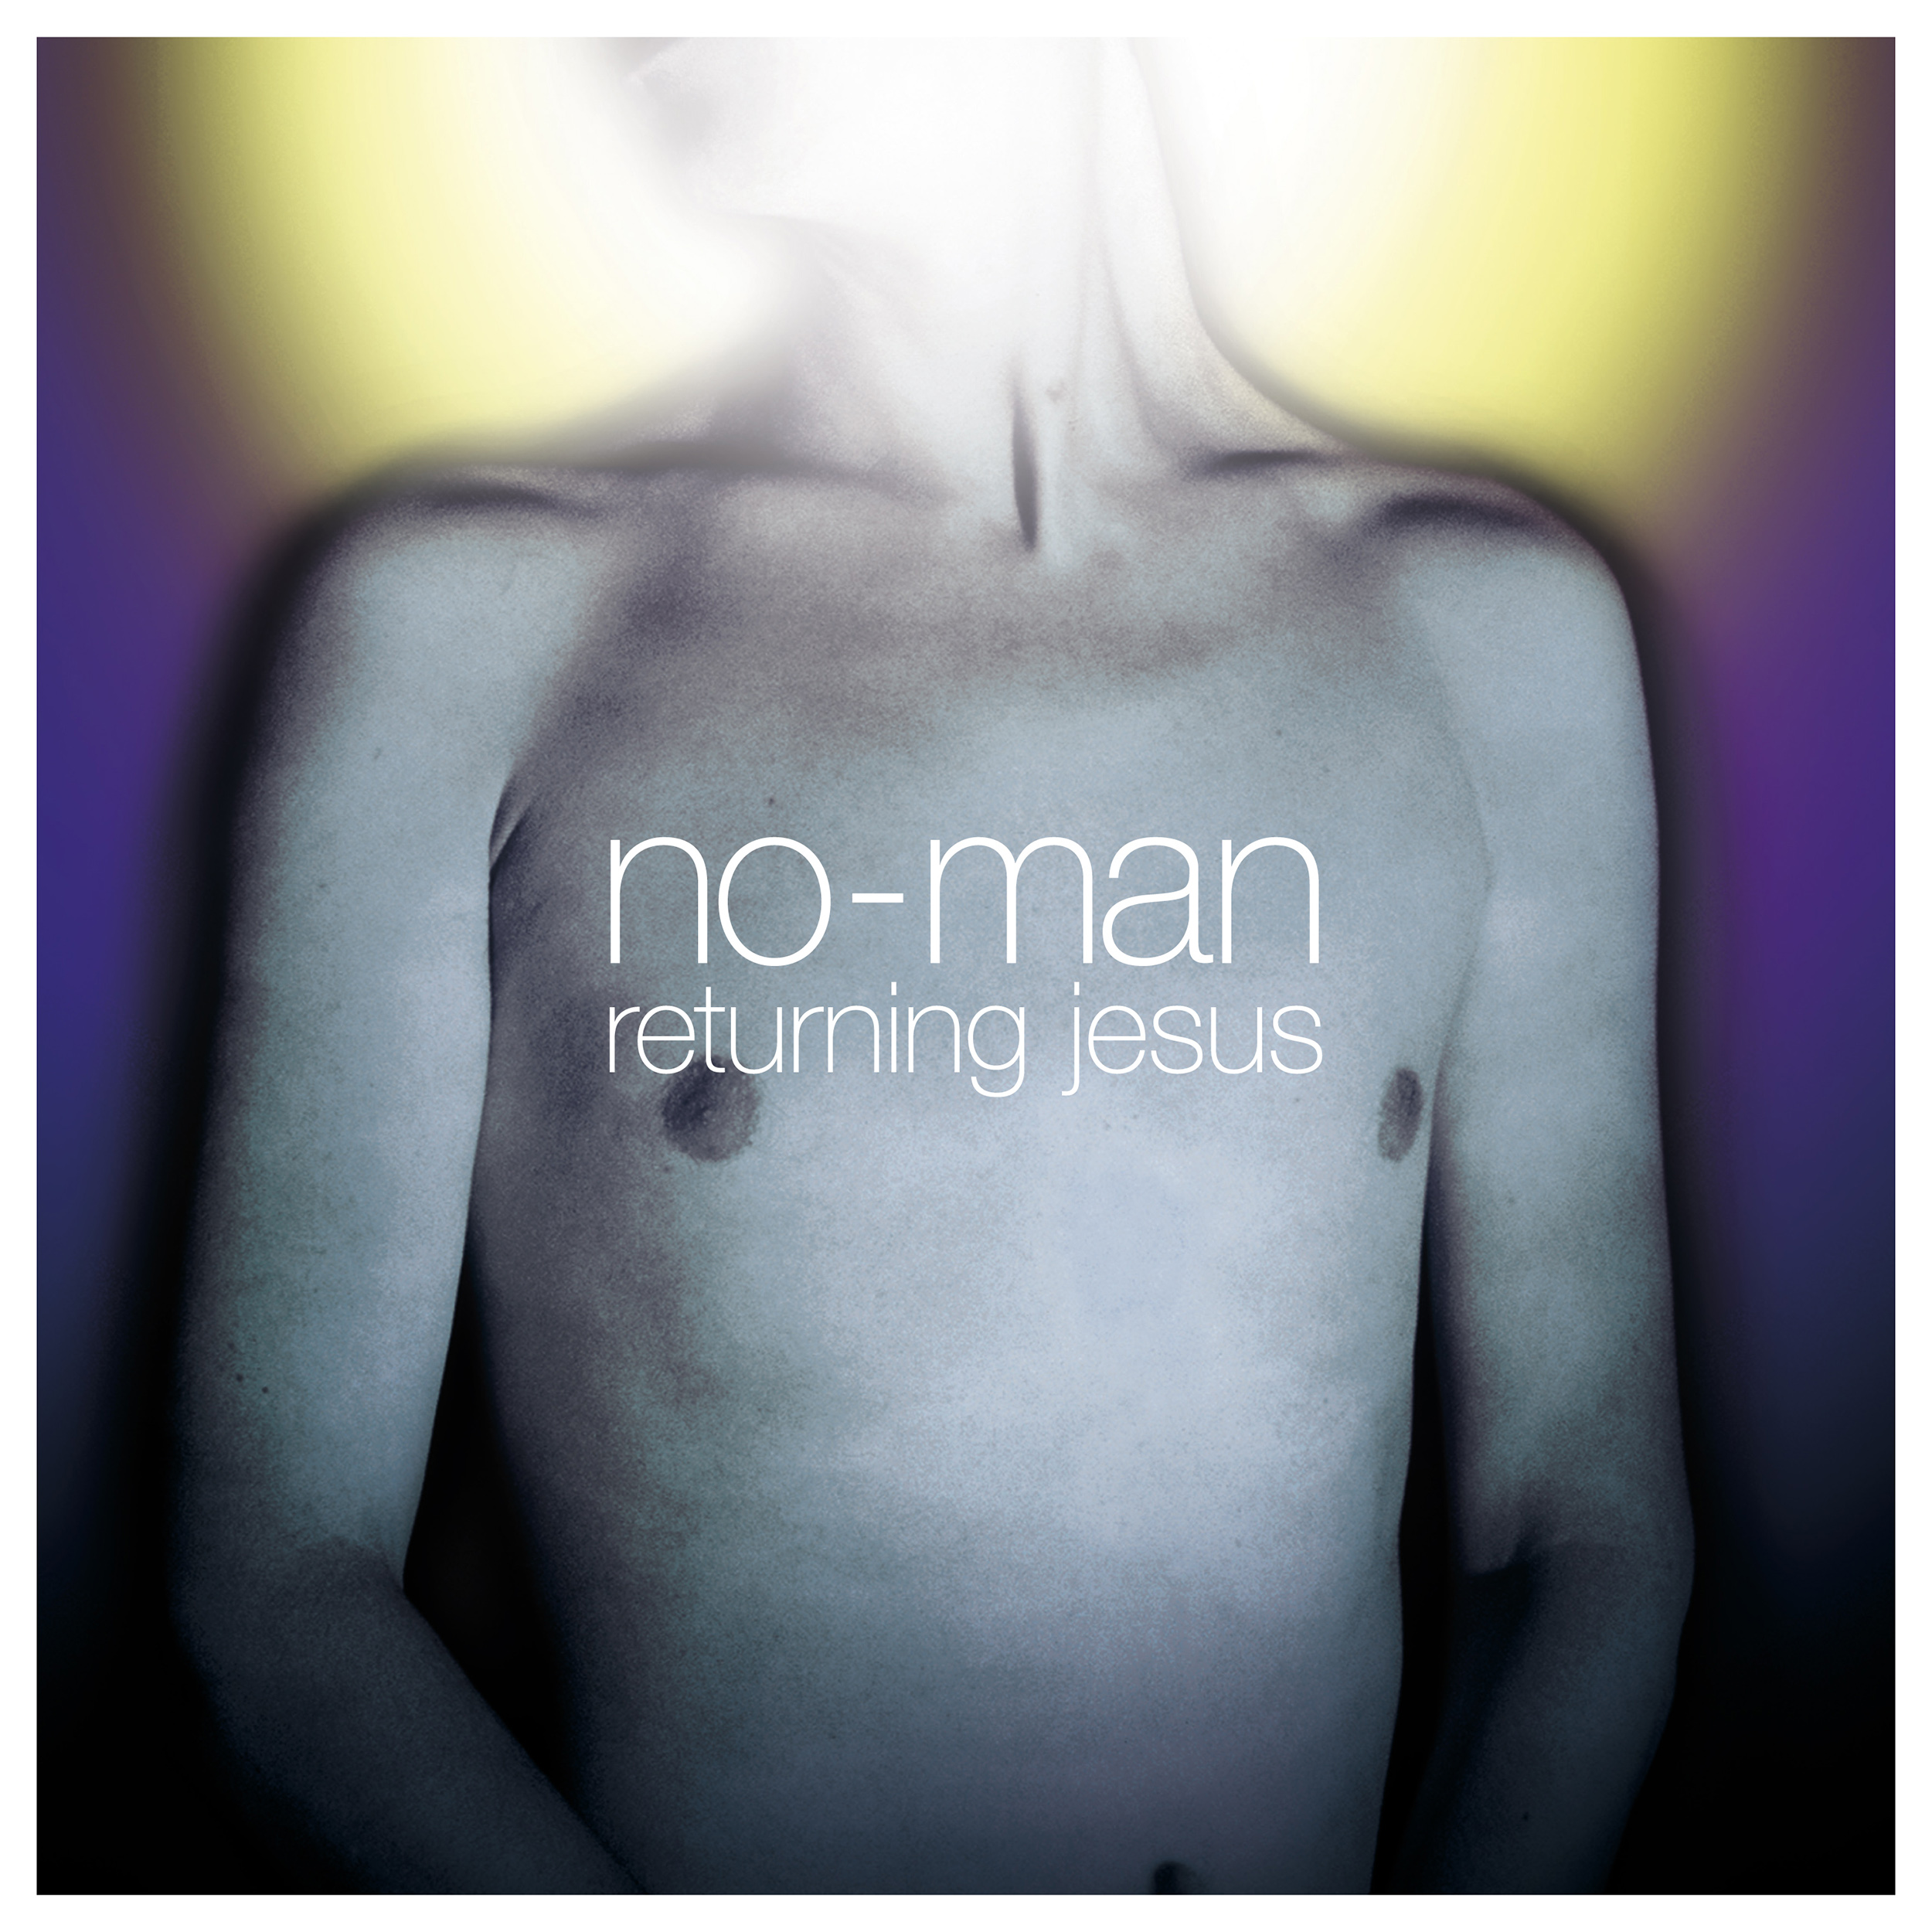 Kscope to release the 2001 fourth album from No-Man on 2 CD & 2LP for the first time